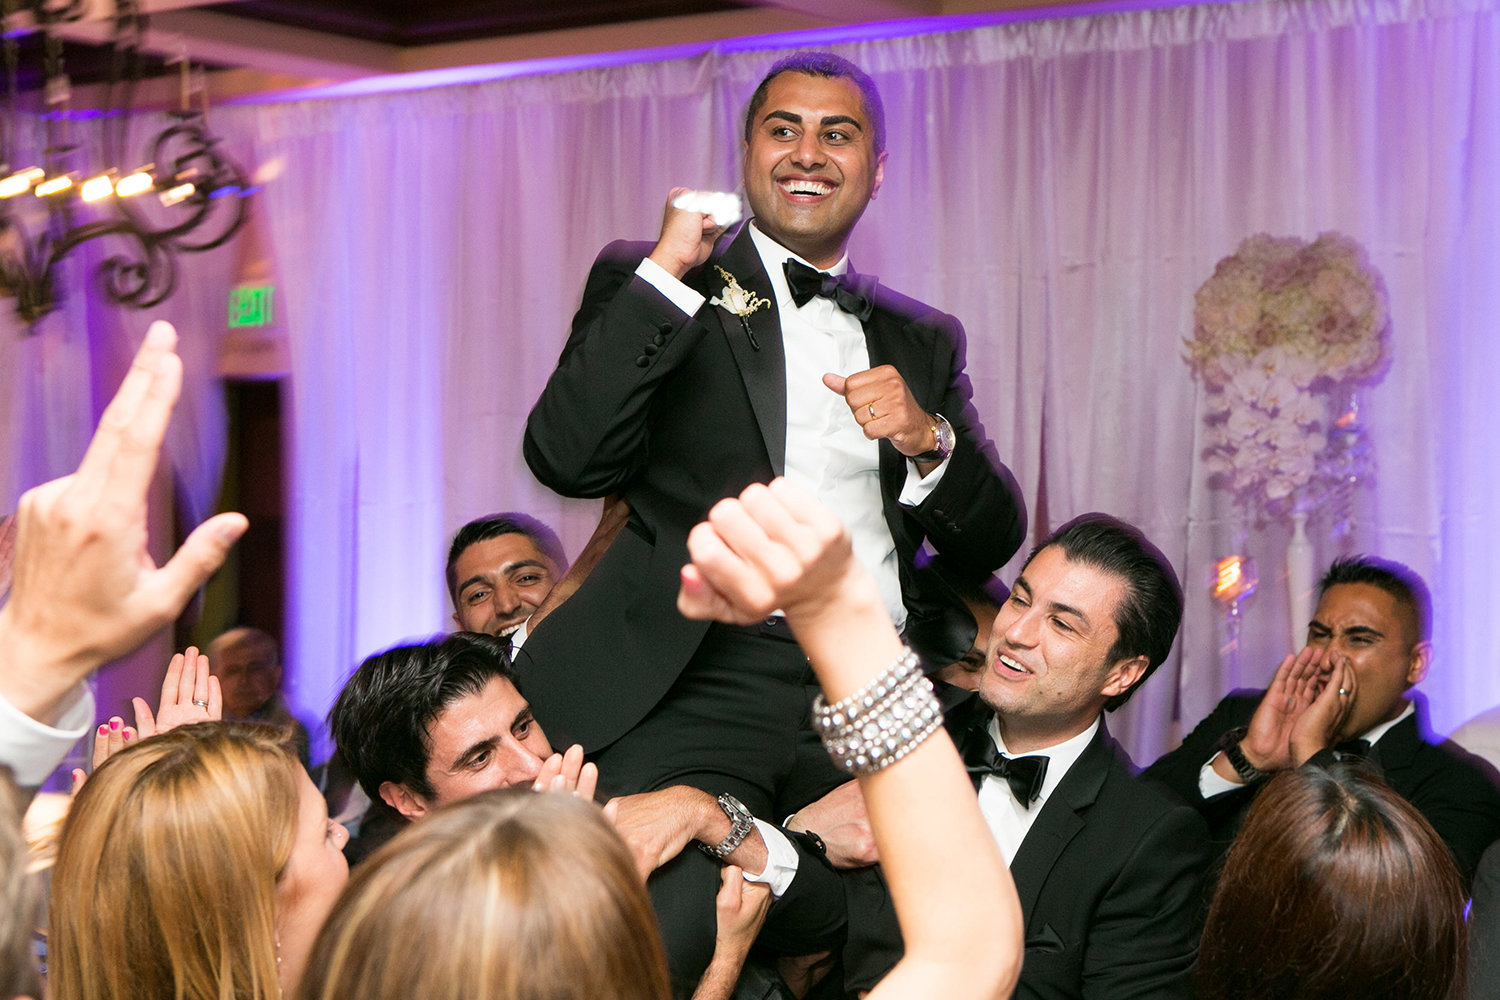 Groom hoisted up in the air during the reception